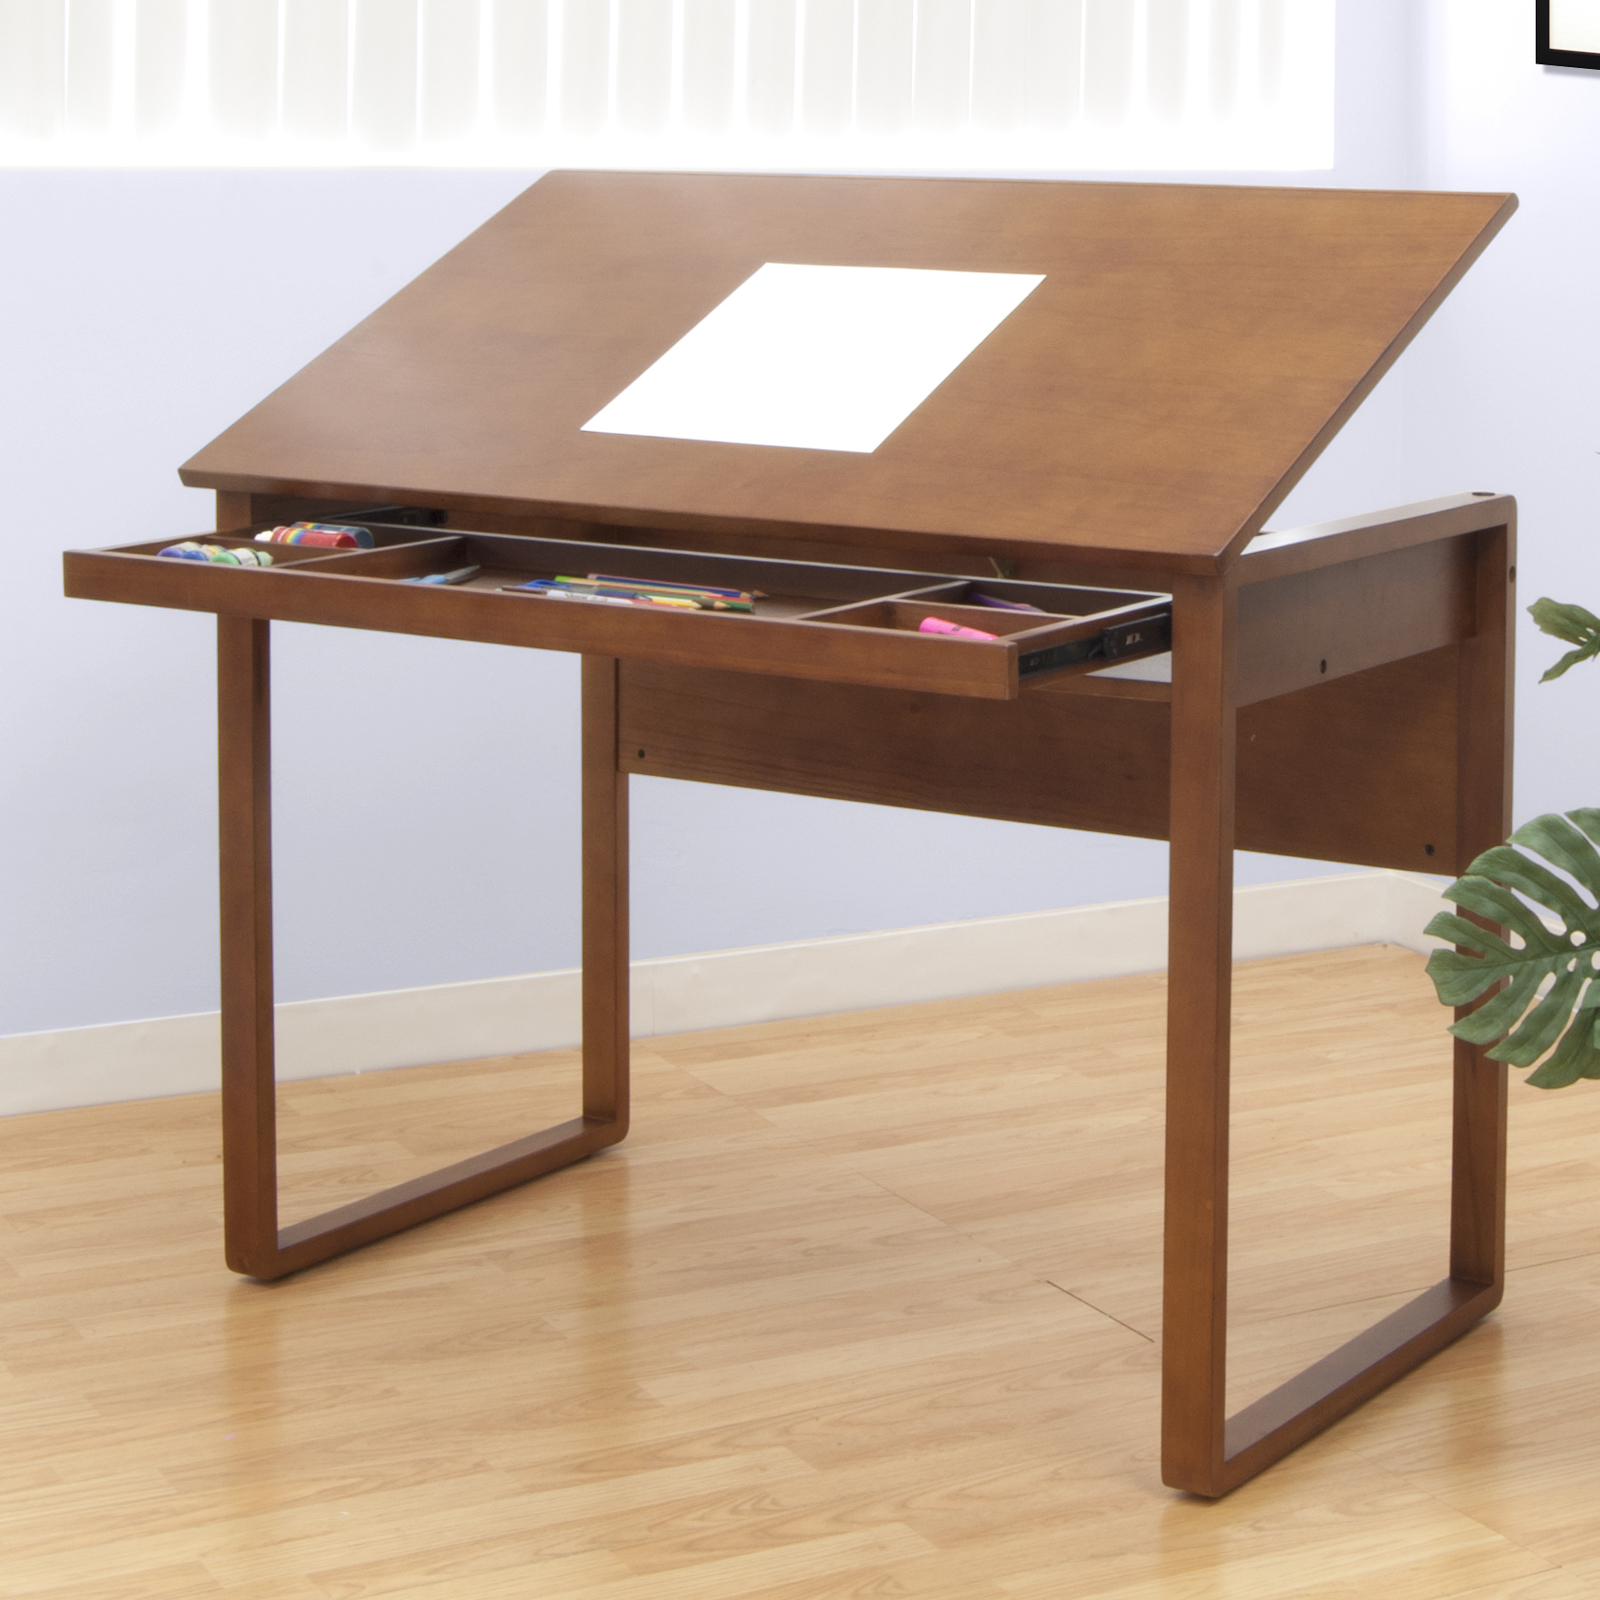 Ponderosa Wooden Drafting Table By Studio Designs In Kids